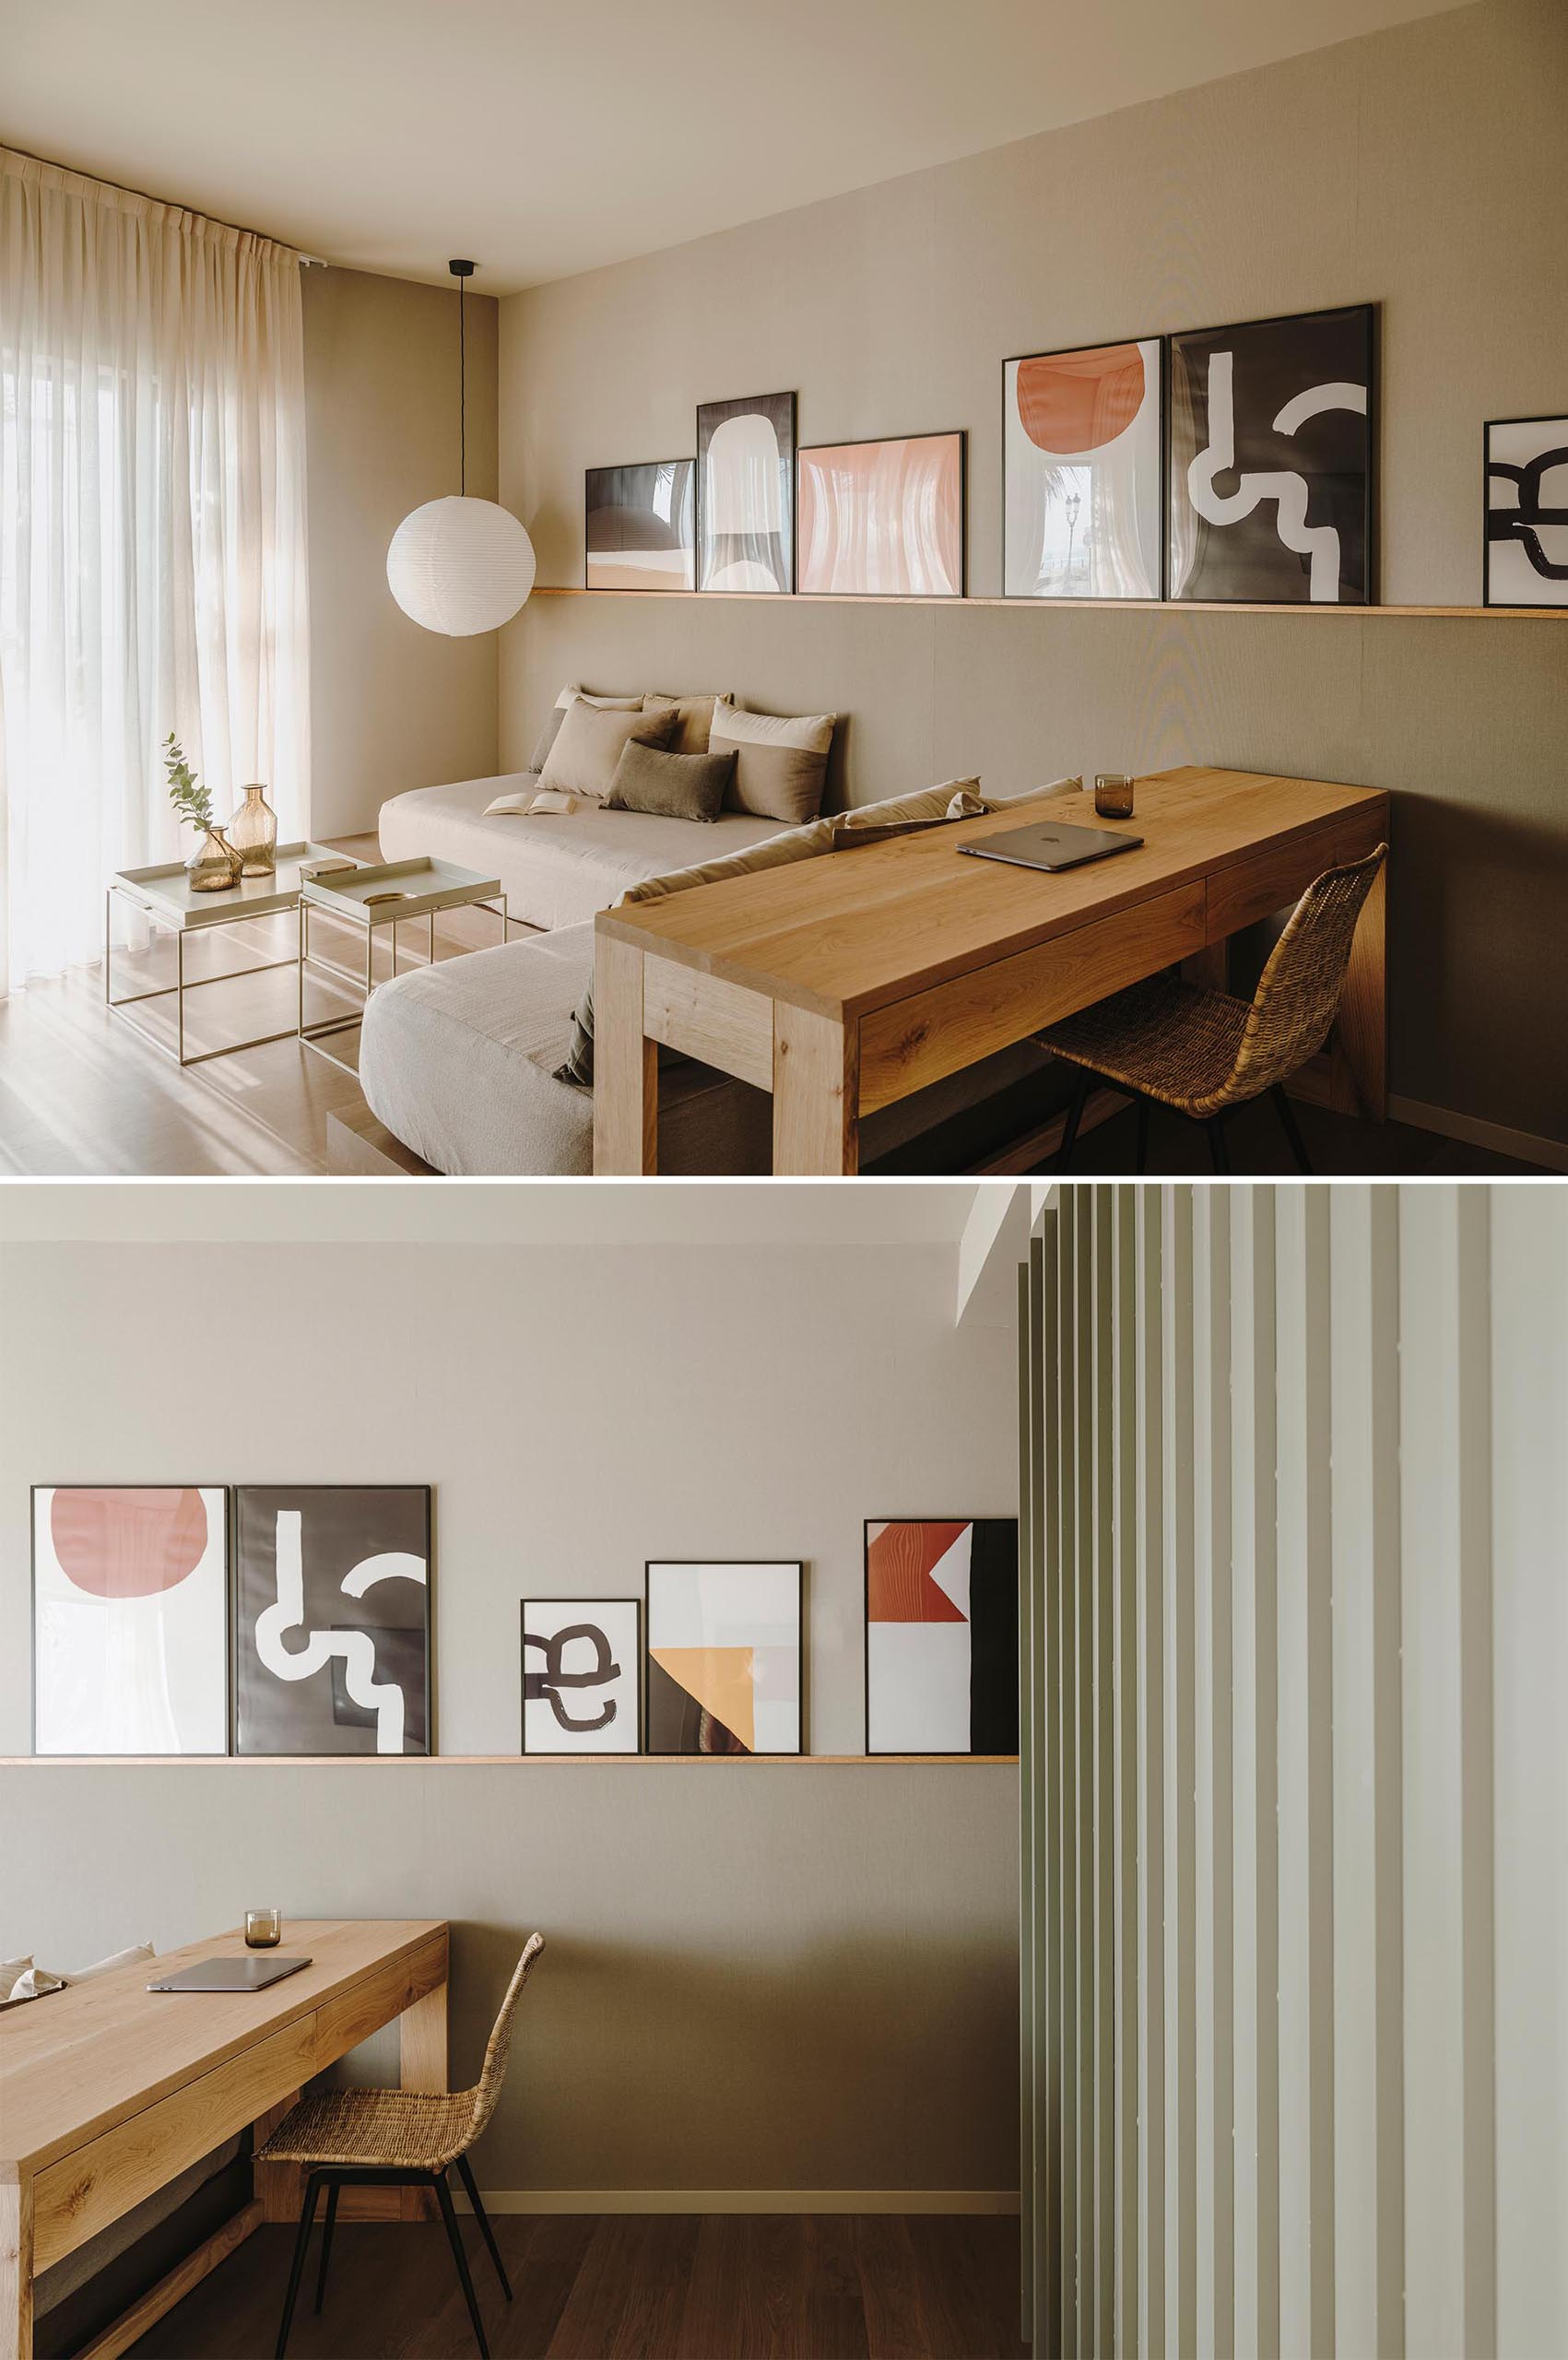 An idea for displaying art in a room is to use a simple picture rail that can hold frames of different sizes.